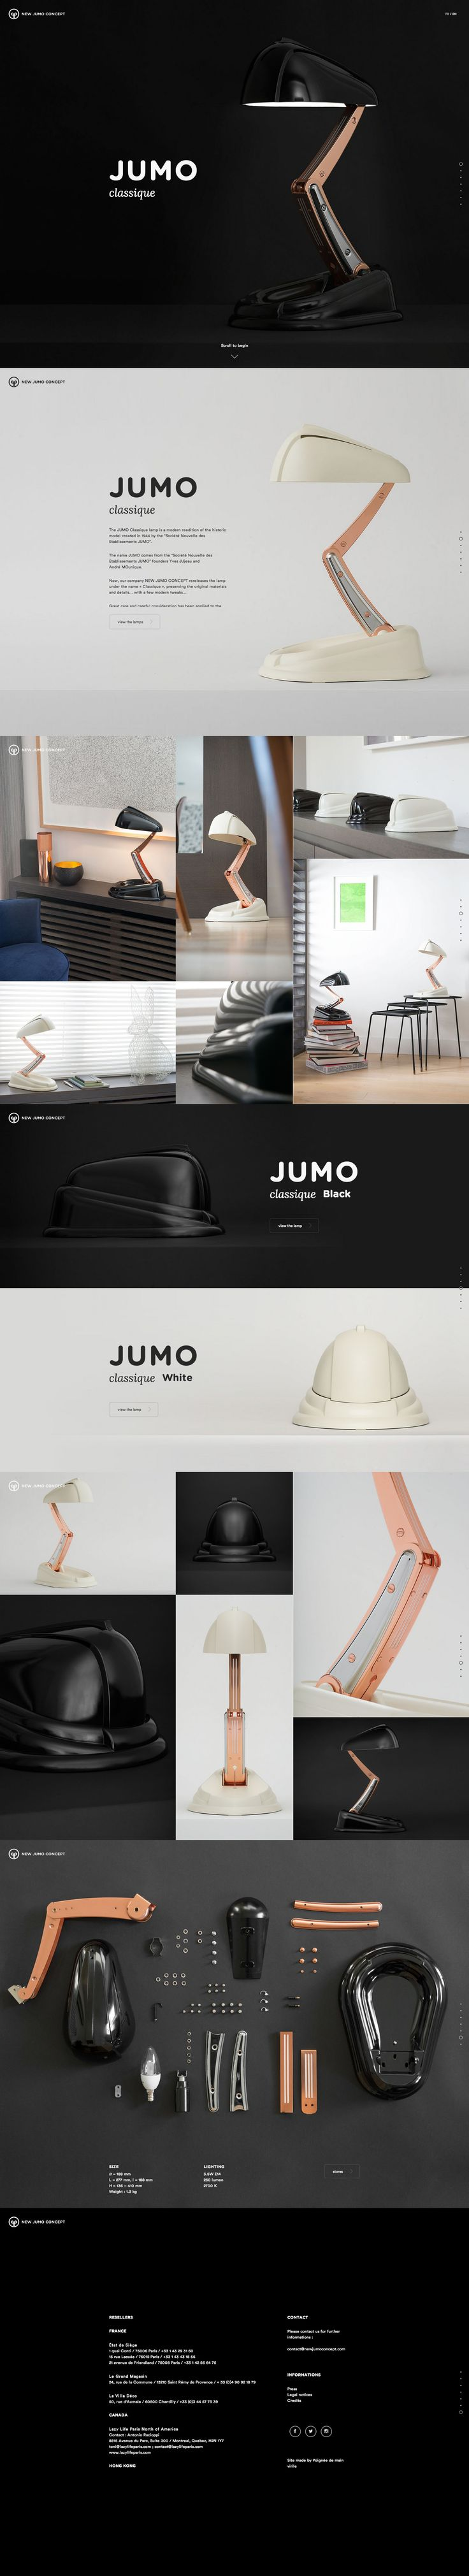 JUMO Classique lamp - a modern reedition of the historic model created in 1944 by the Socit Nouvelle des Etablissements JUMO. more on http://html5themes.org